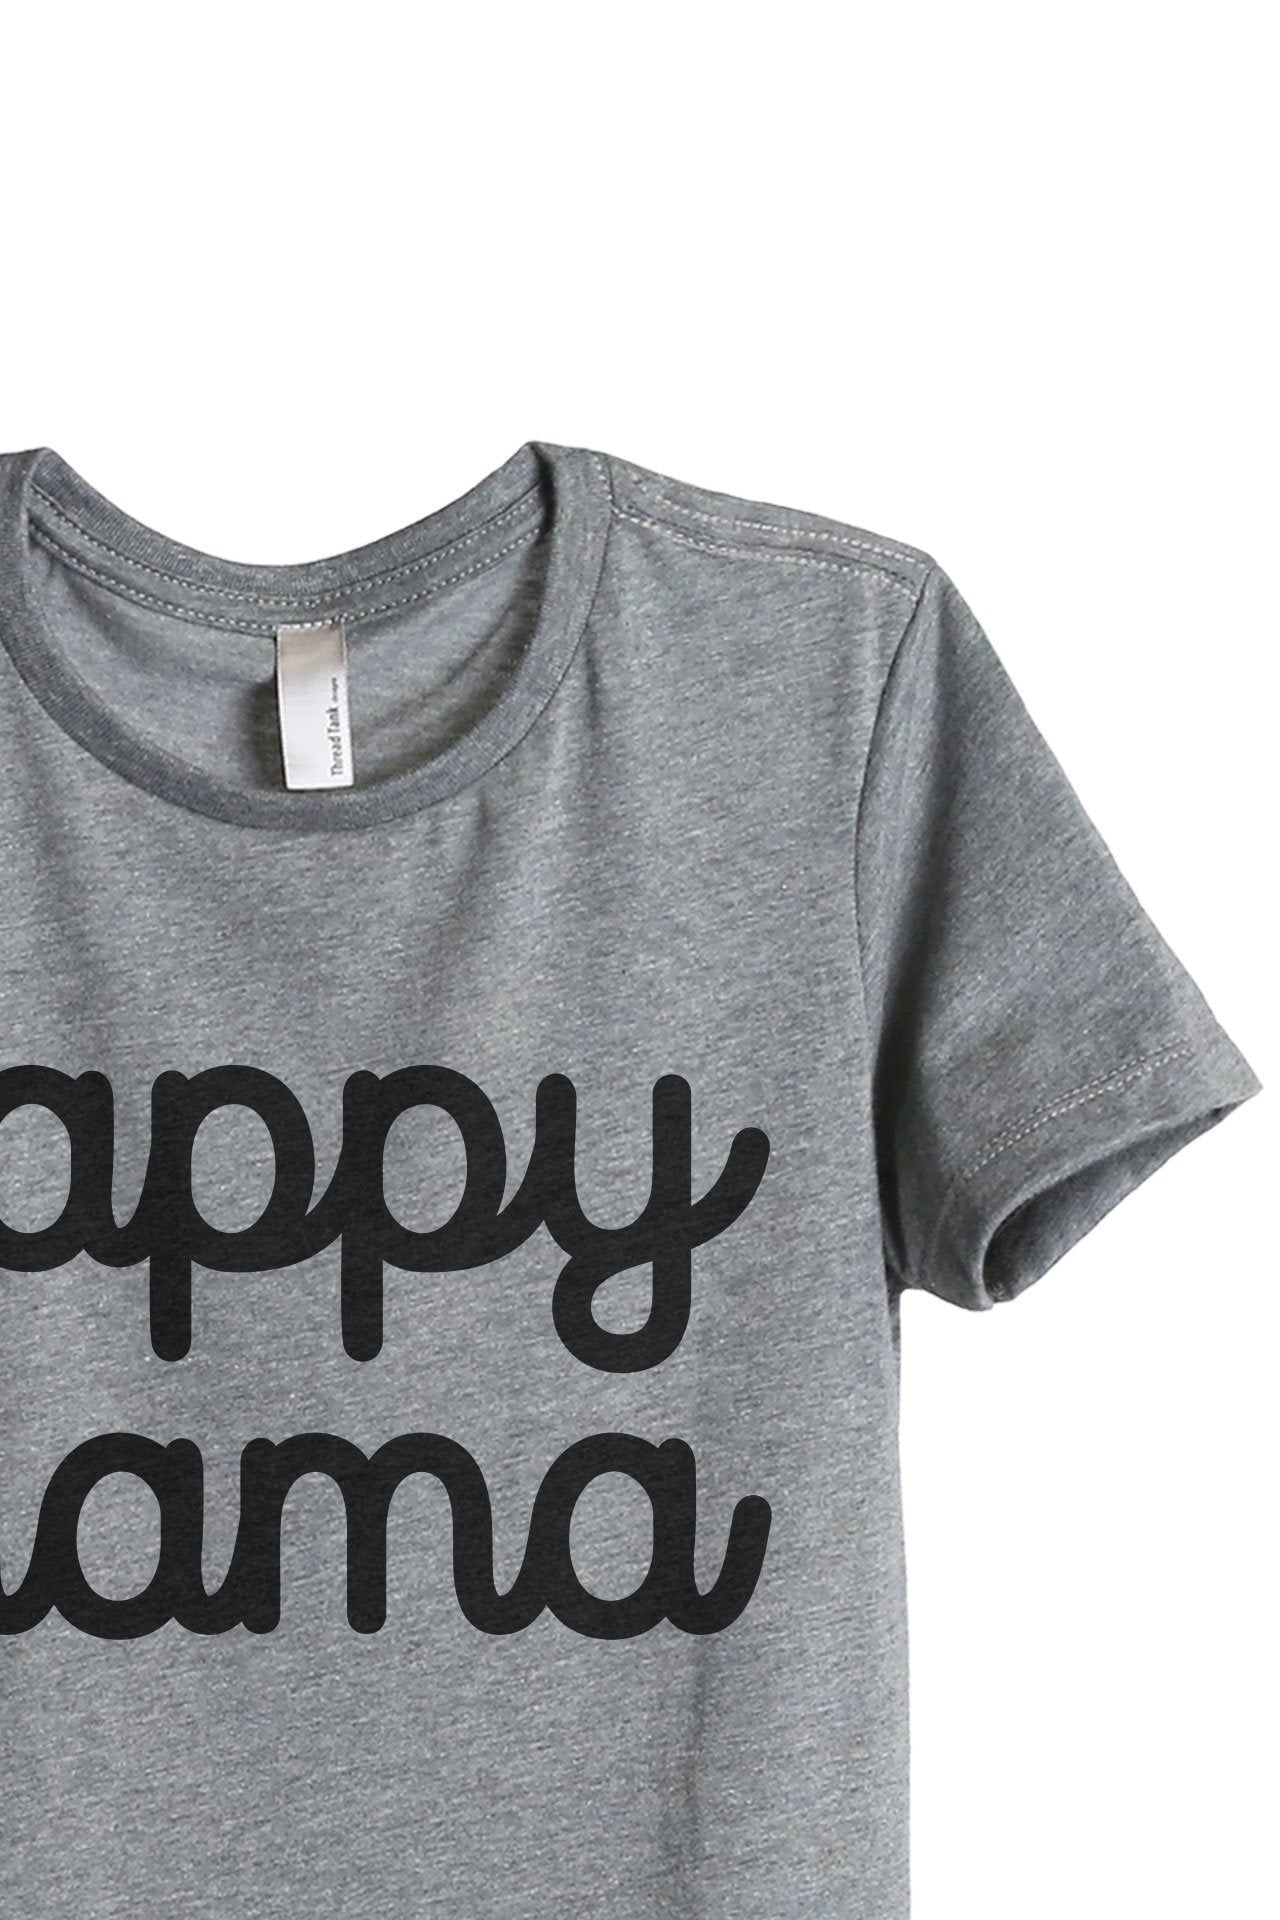 Happy Mama Women's Relaxed Crewneck T-Shirt Top Tee Heather Grey